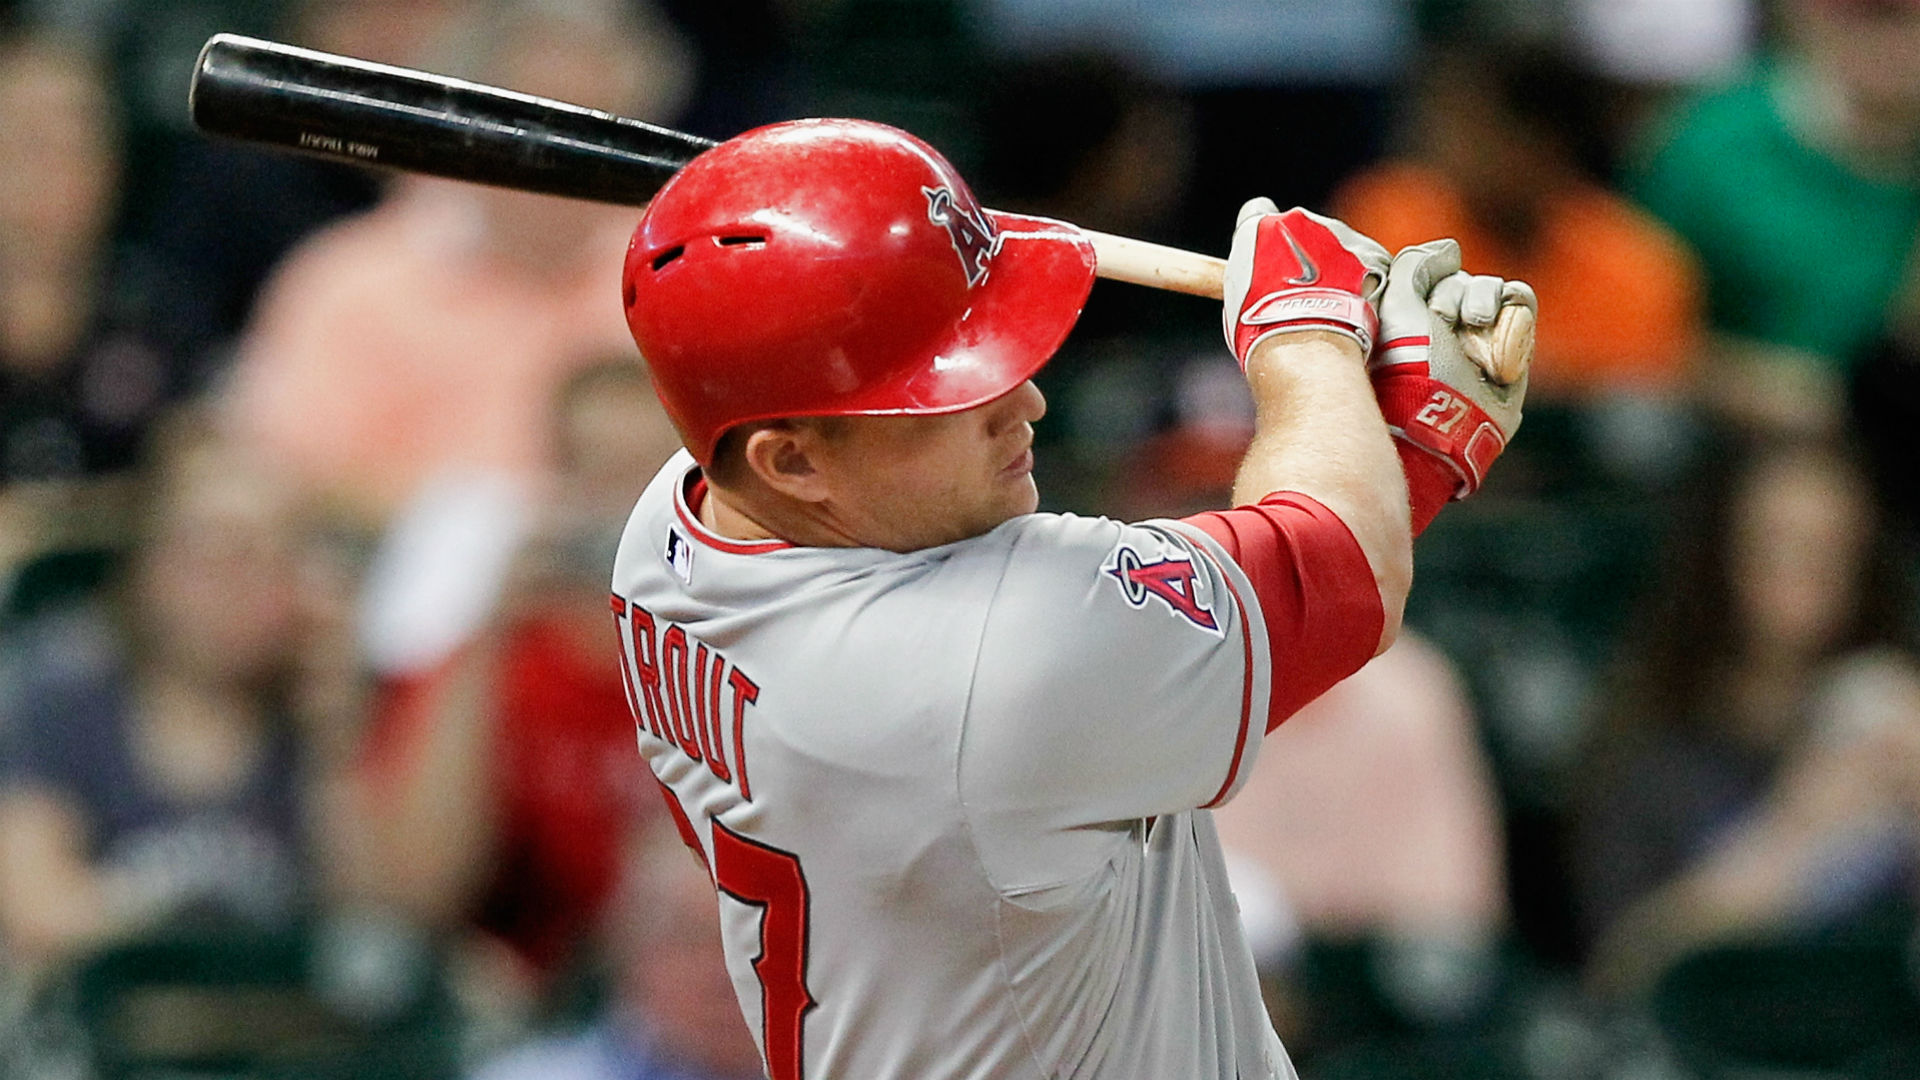 MLB Nightly 9: Mike Trout becomes youngest to reach 100 HRs, SBs